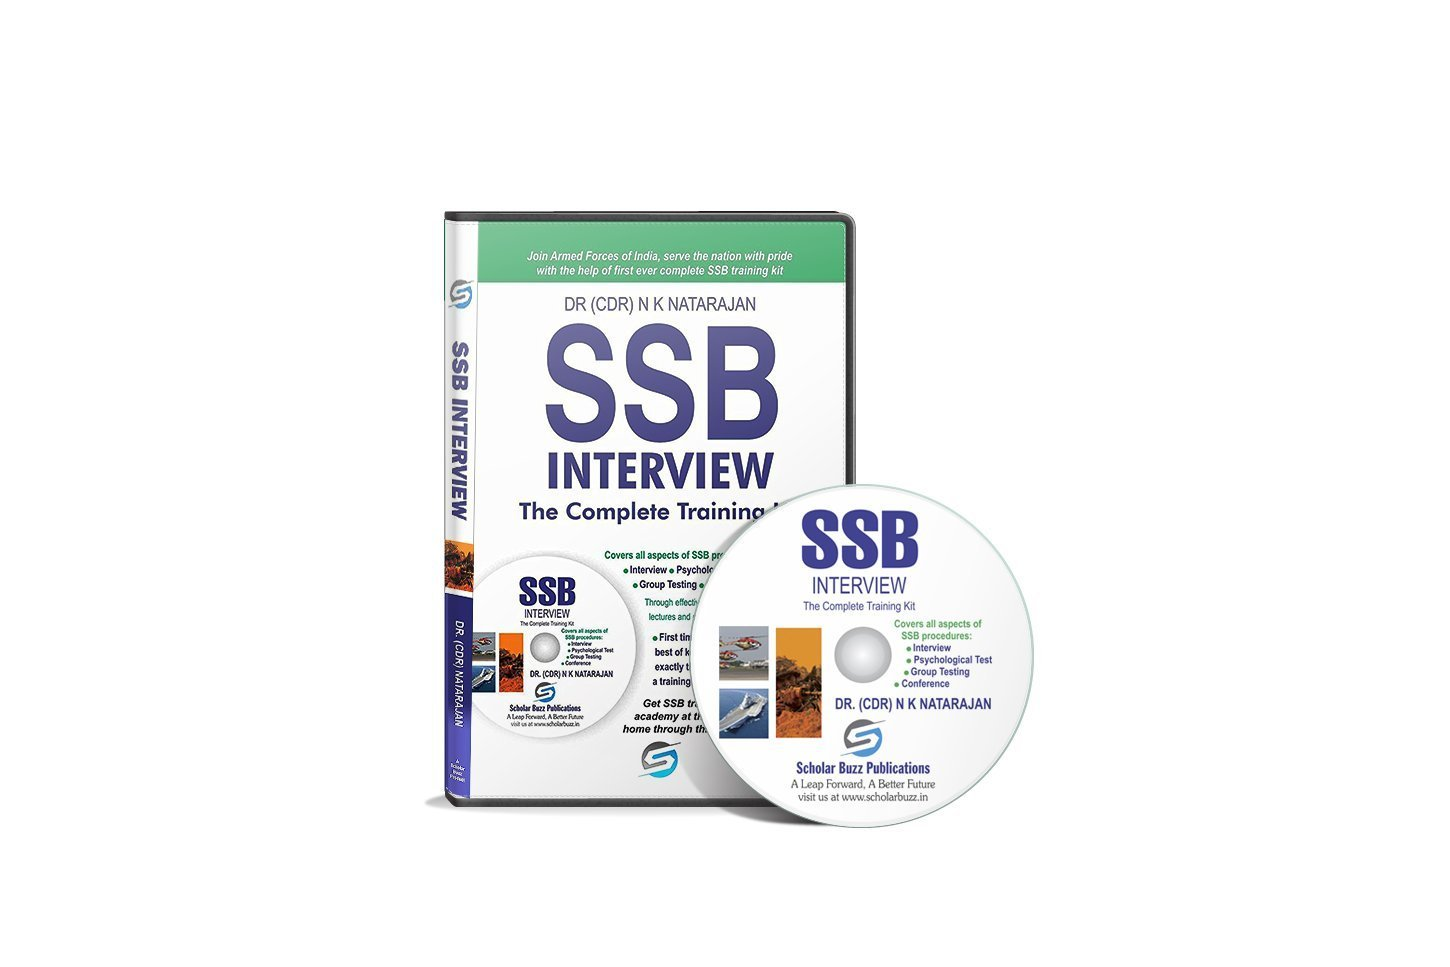 Ssb interview 17 hours power packed video lectures dr cdr nk ssb interview 17 hours power packed video lectures dr cdr nk natarajan with the denovo update amazon software fandeluxe Gallery